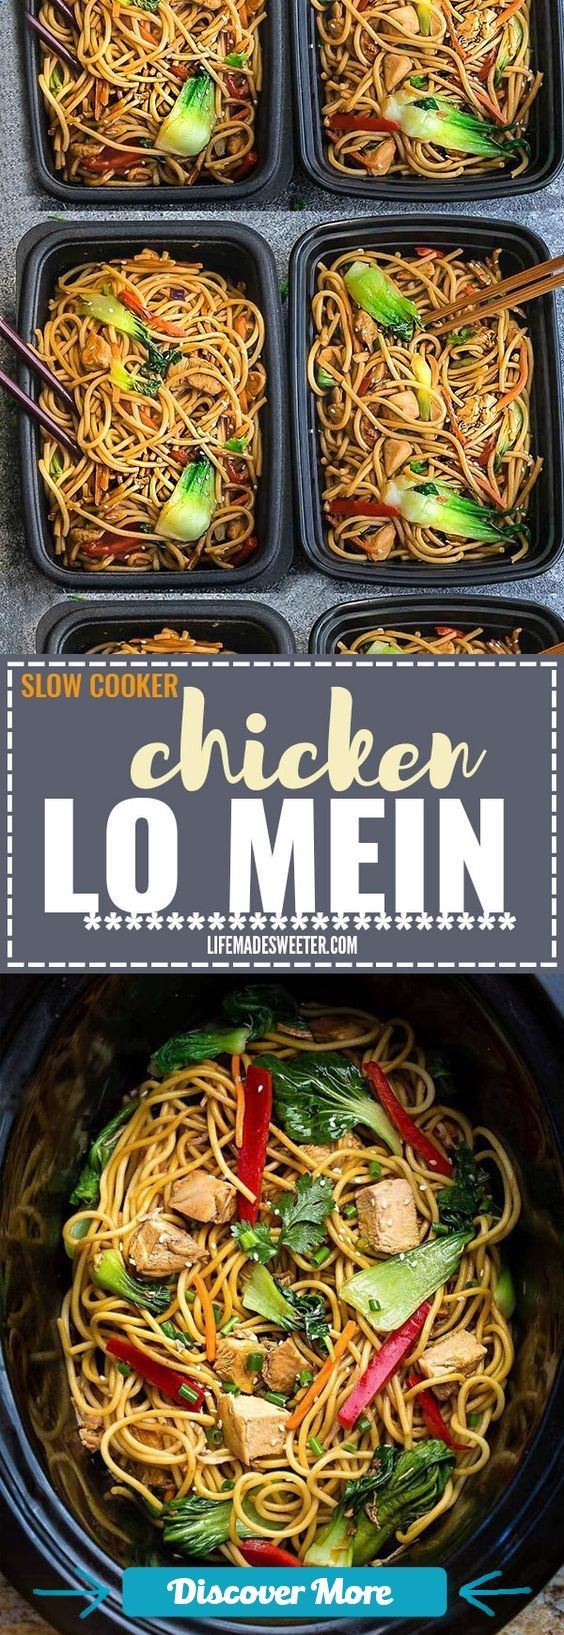 Crock pot Slow Cooker Chicken Lo Mein makes the perfect easy Asian-inspired weeknight meal and perfect for your weekly meal prep as lunch bowls for work or school. Best of all, takes only 15 minutes to put together with the most authentic flavors! So delicious and way better than any Chinese takeout! Leftovers make delicious school or work lunches or dinner the next day! #slowcooker #slowcook #slowcookerrecipes #slowcookerchicken